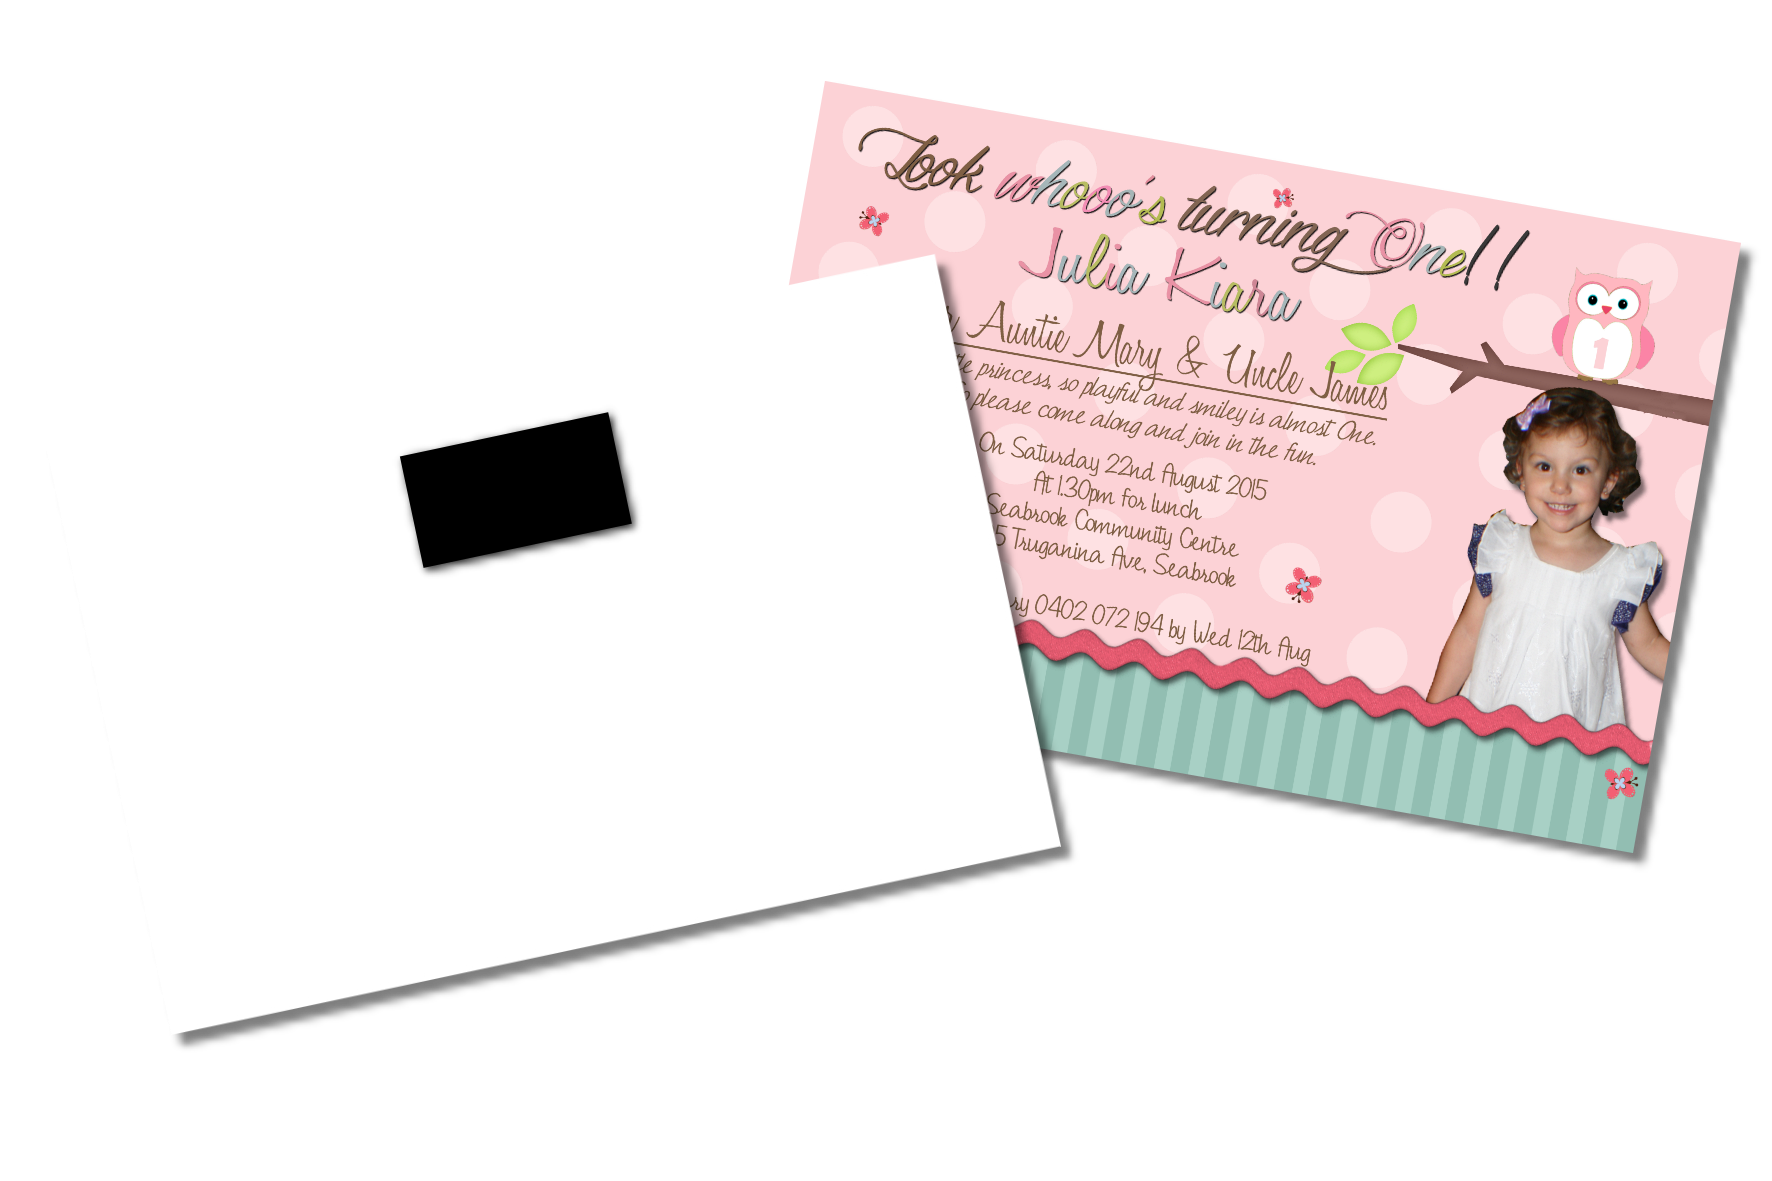 Birthday Cards Melbourne ~ Funnyshots party invitations invitations and cards for all occasions